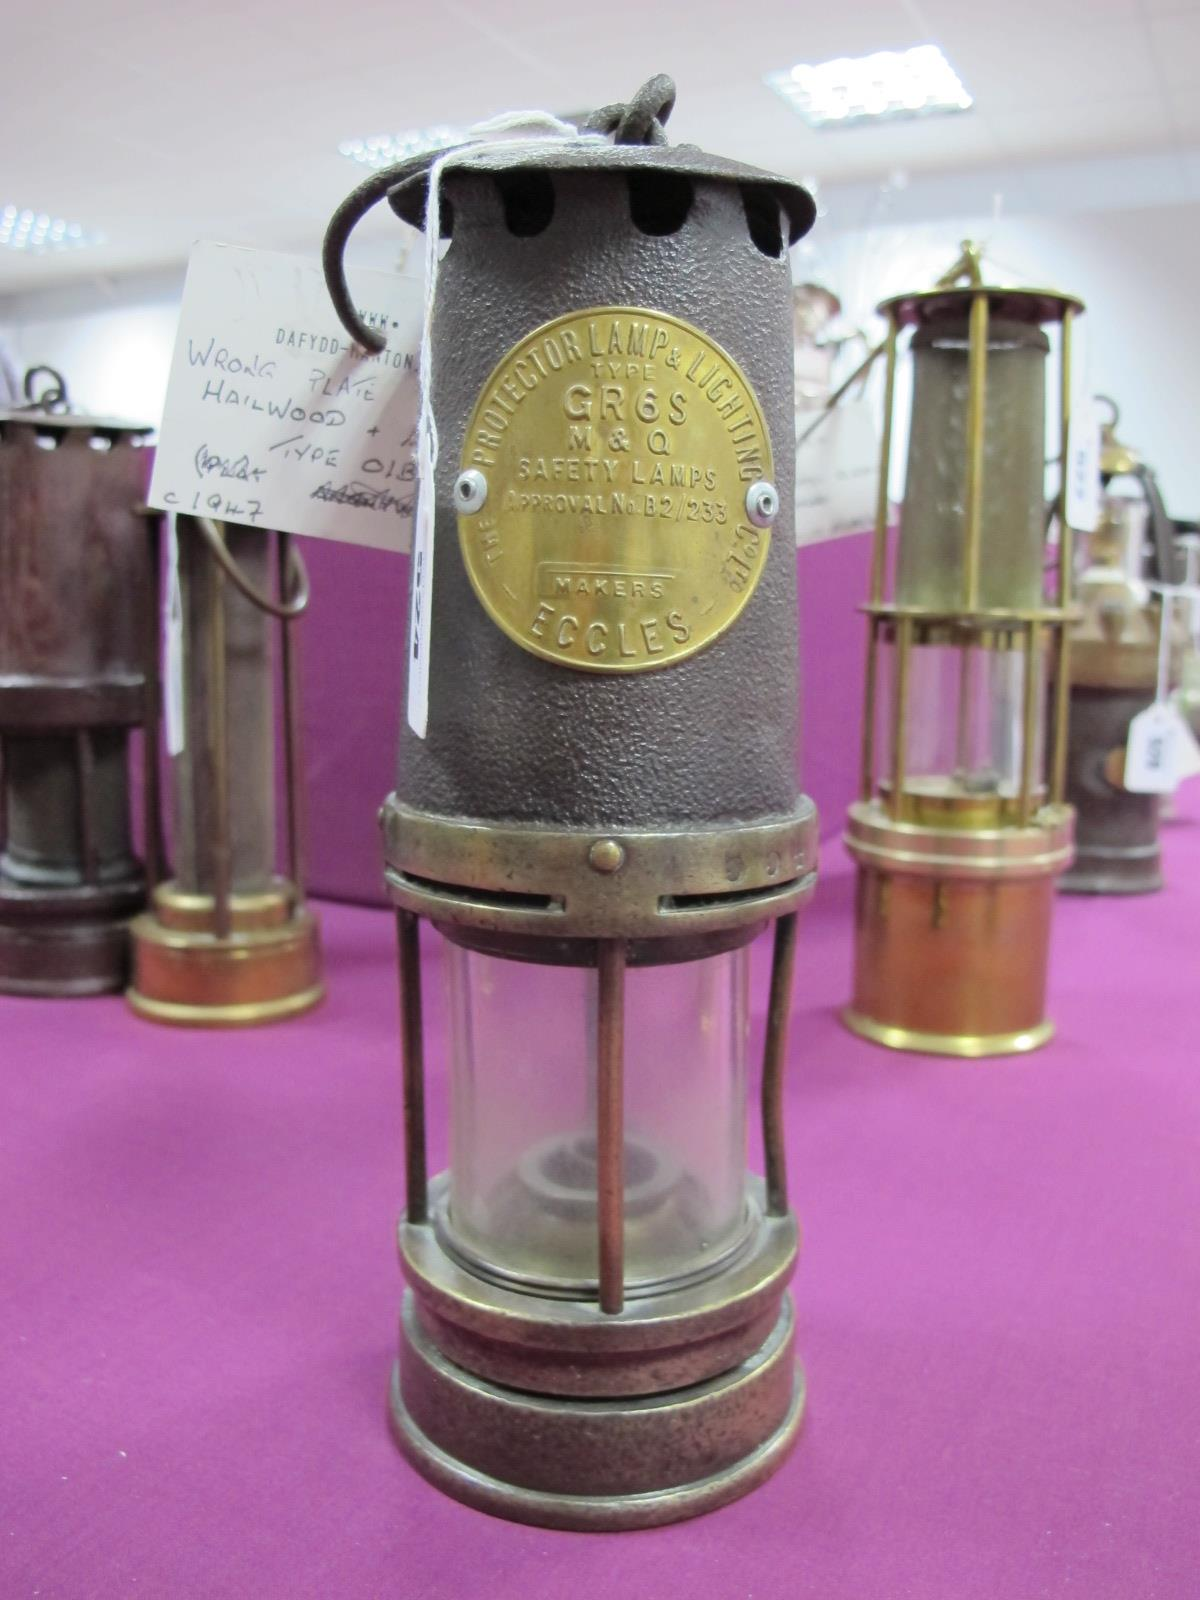 Miners Lamp Bearing Eccles Plate 'Type GR 6S, M&Q', stamped '554' and '1997' to brass centre band,